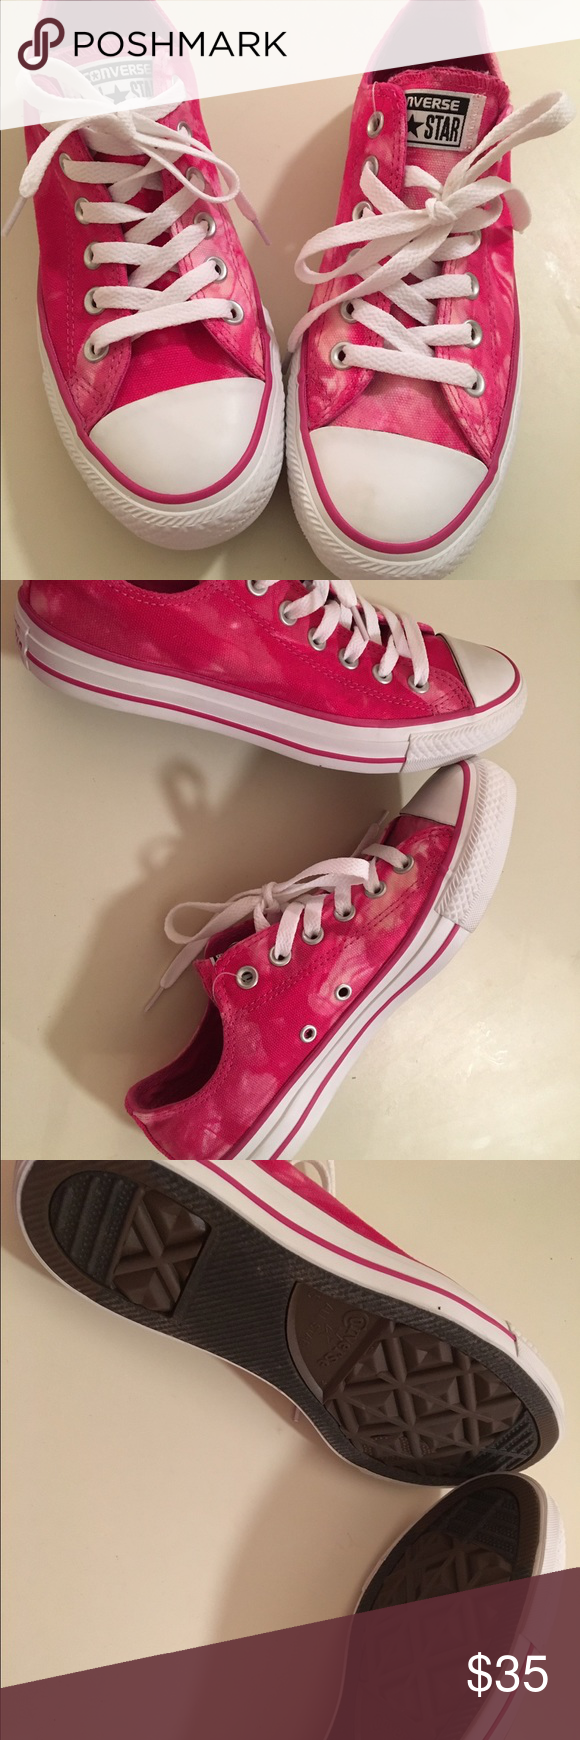 Never worn pink tie dye converse Size 7 woman's...Brand new without box or tags Converse Shoes Sneakers